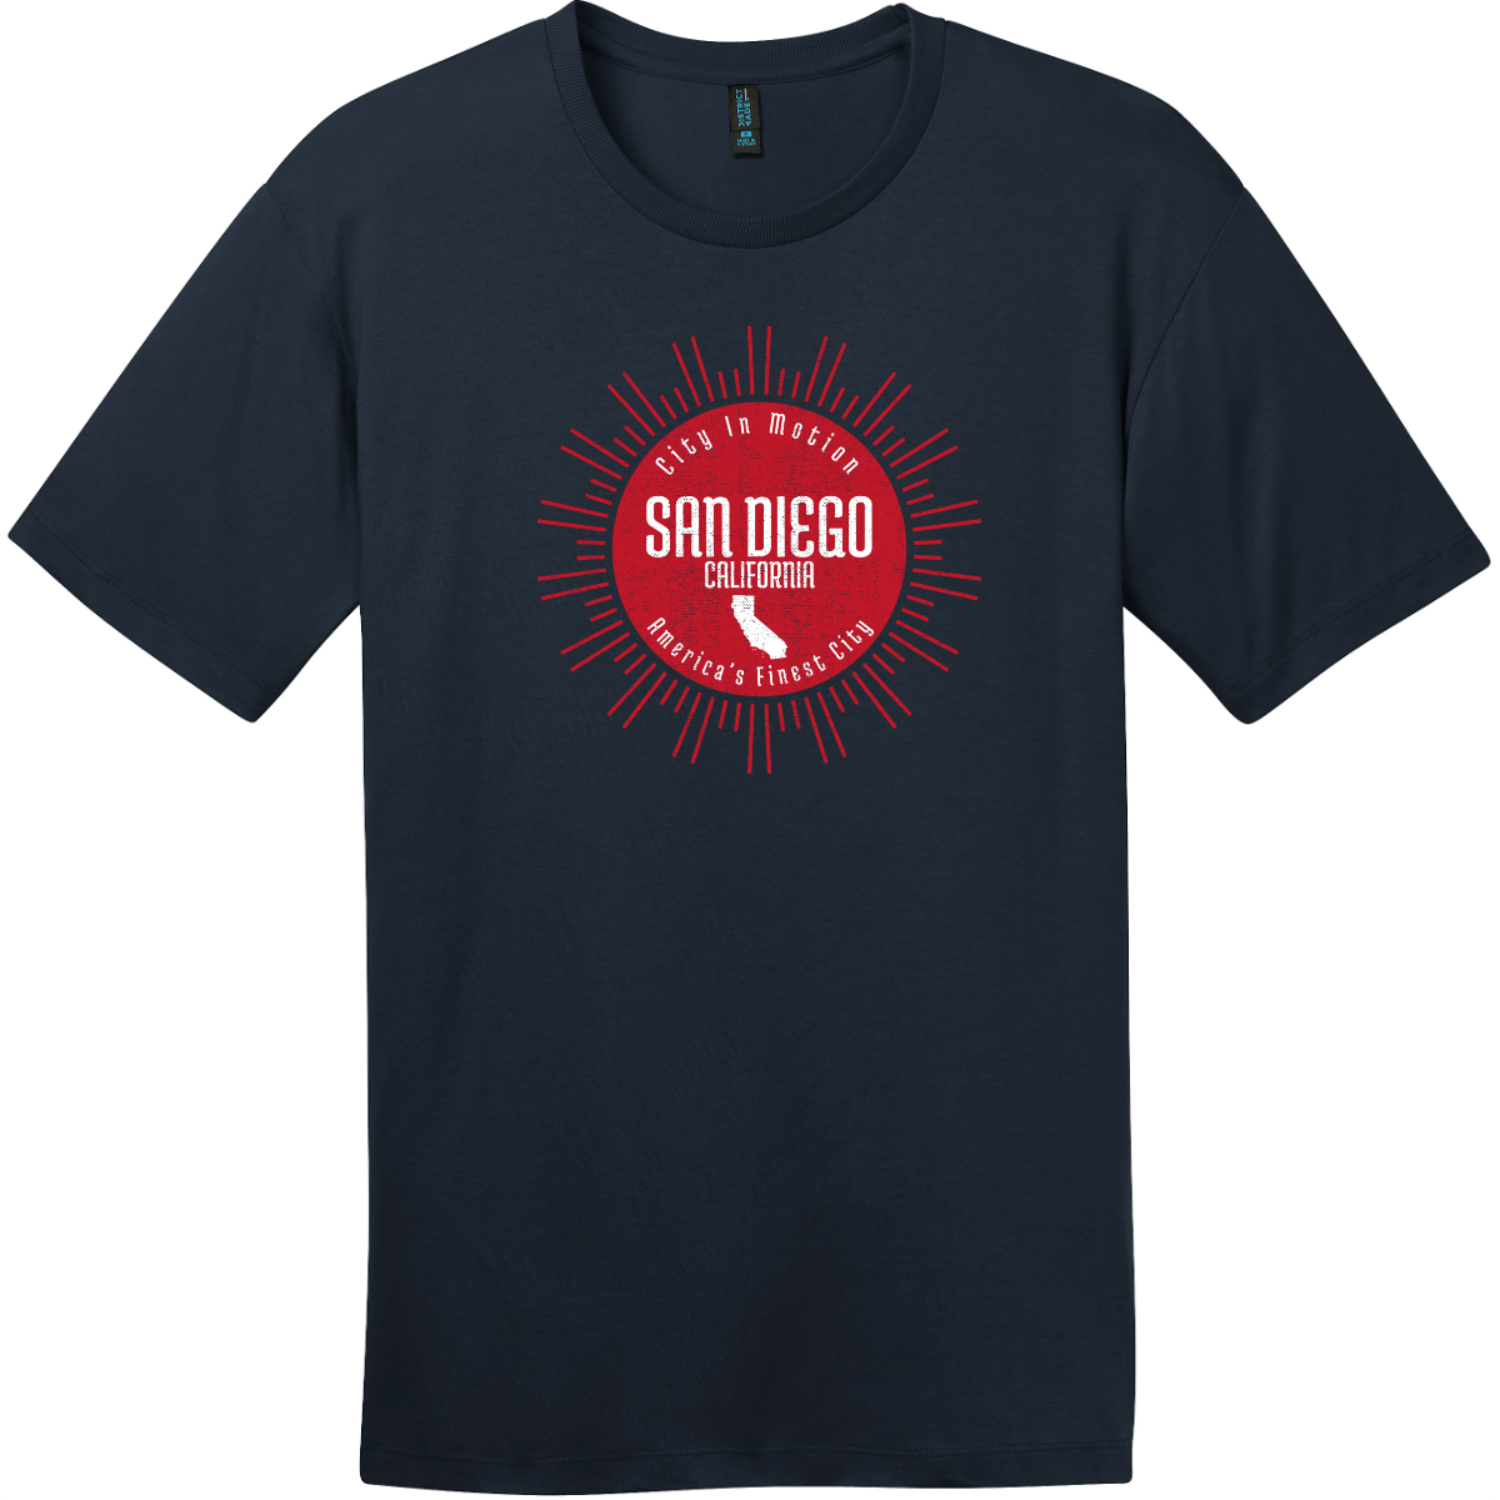 San Diego America's Finest City Sunshine T-Shirt New Navy District Perfect Weight Tee DT104